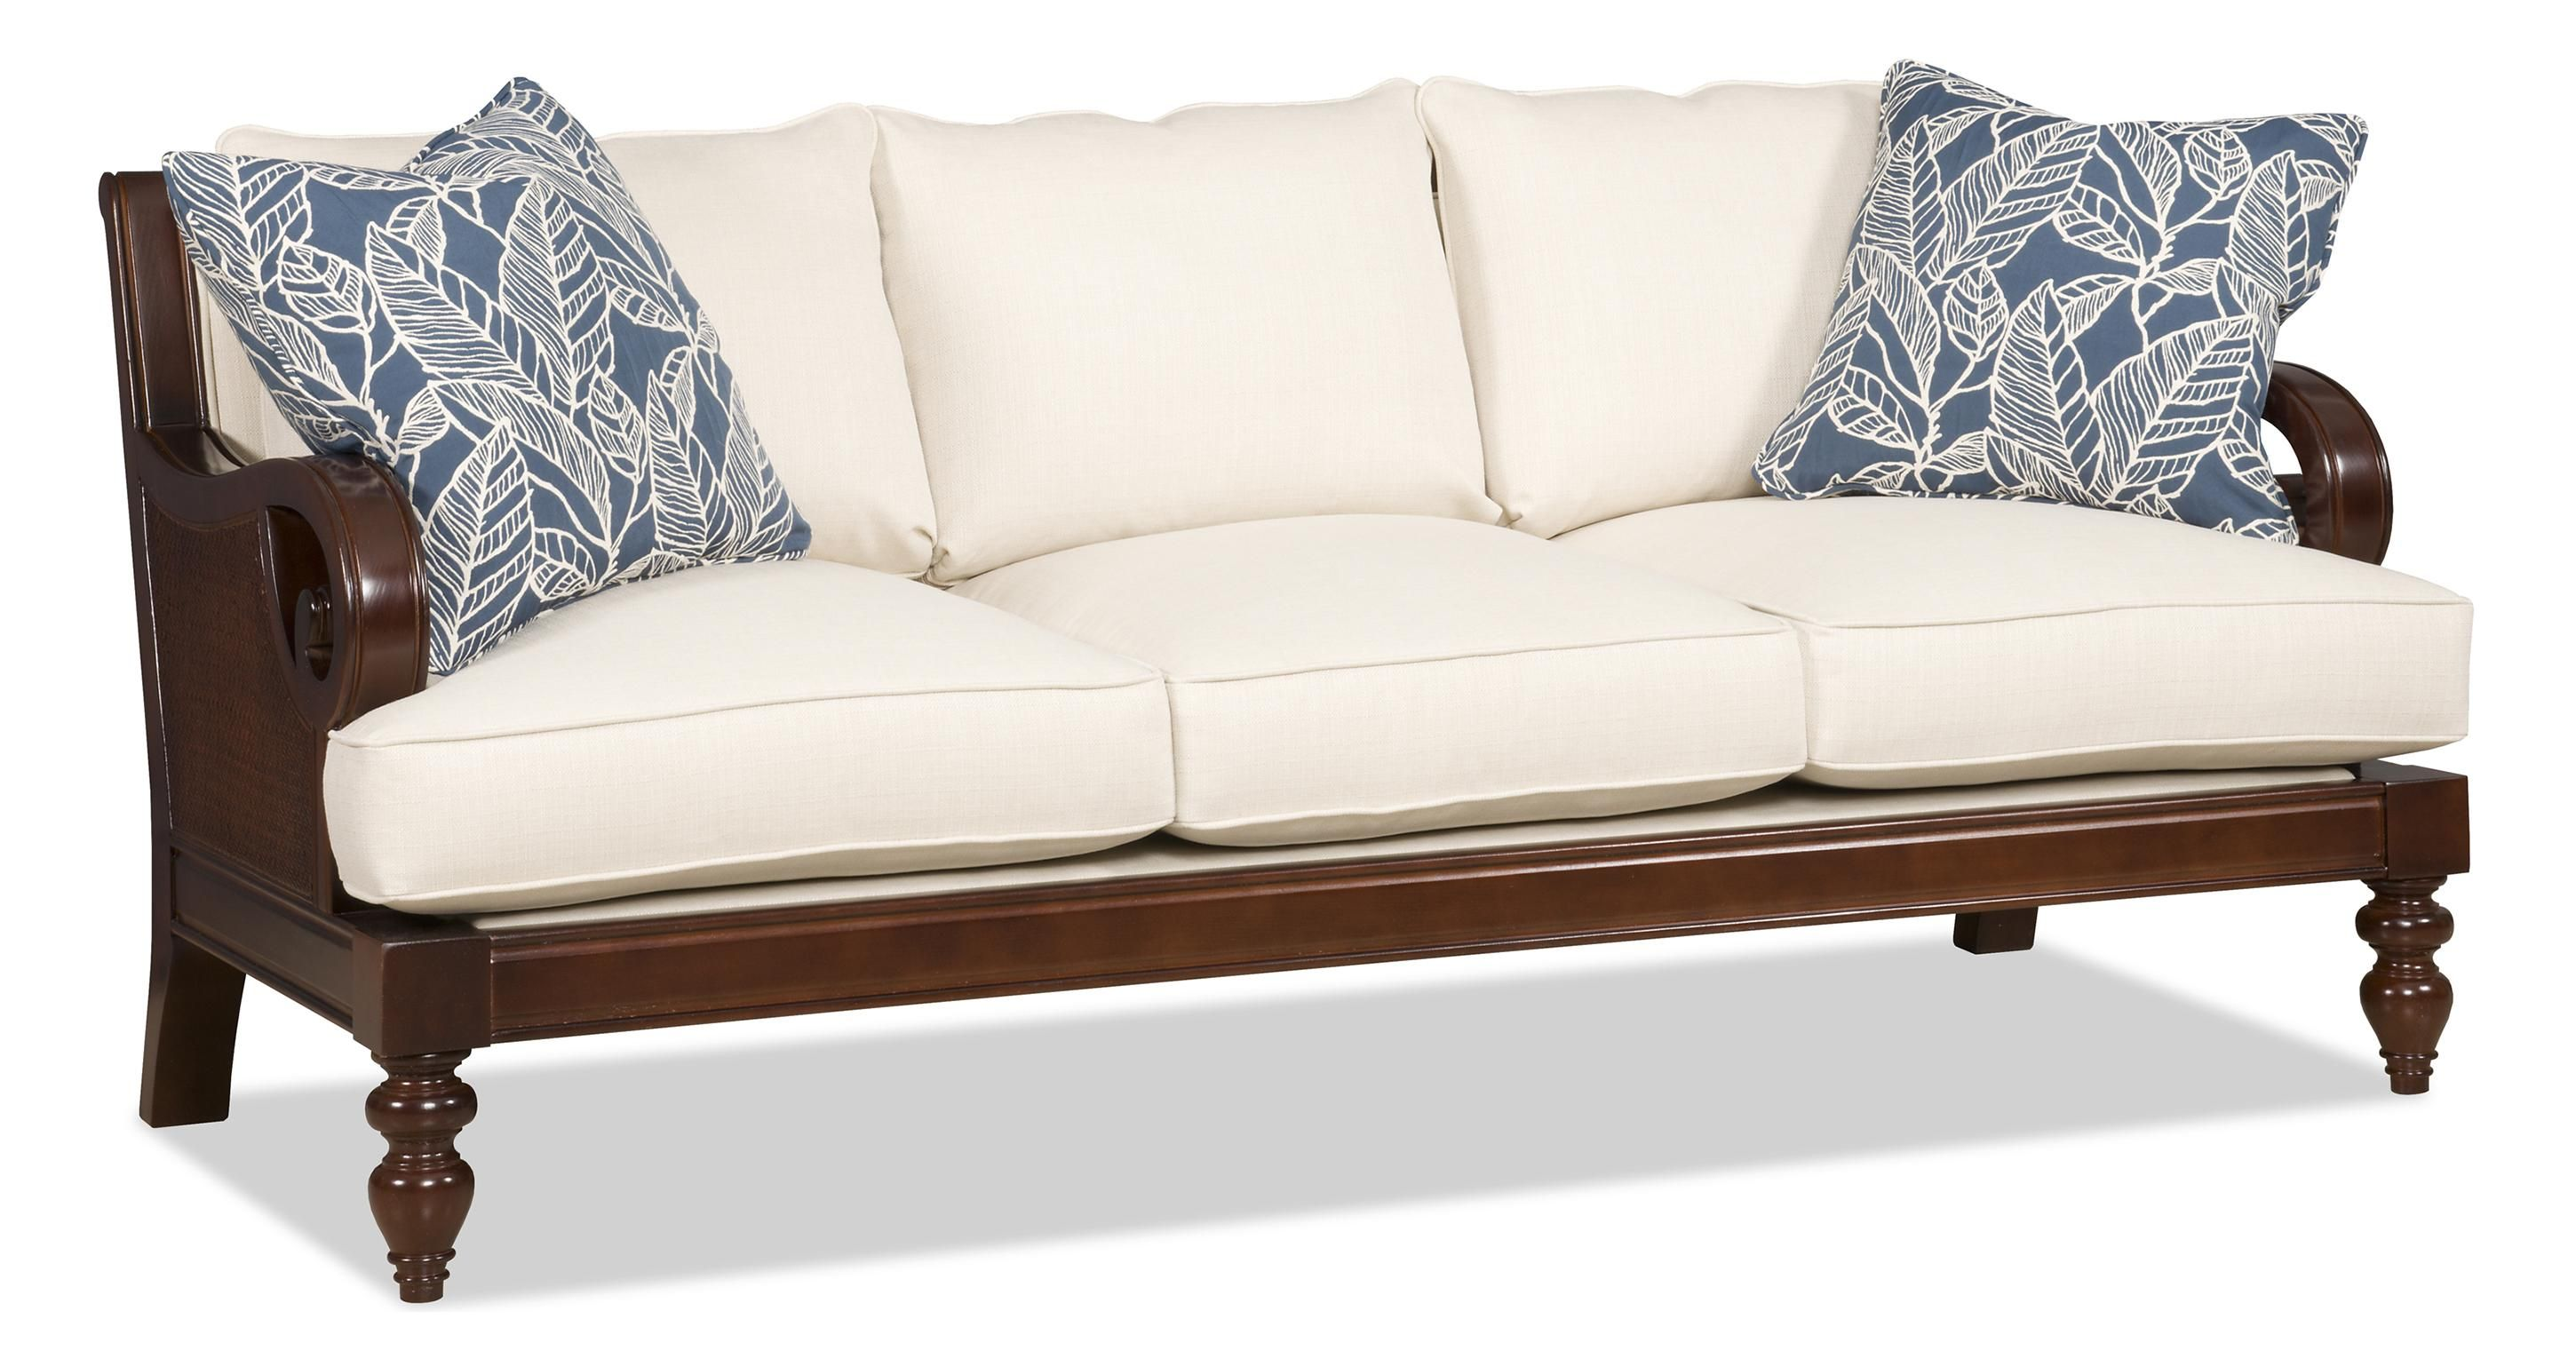 Sam And Cat Sofa Bed Trick Grey Corner Metal Legs Tropical With Exposed Wood Scrolled Arms This